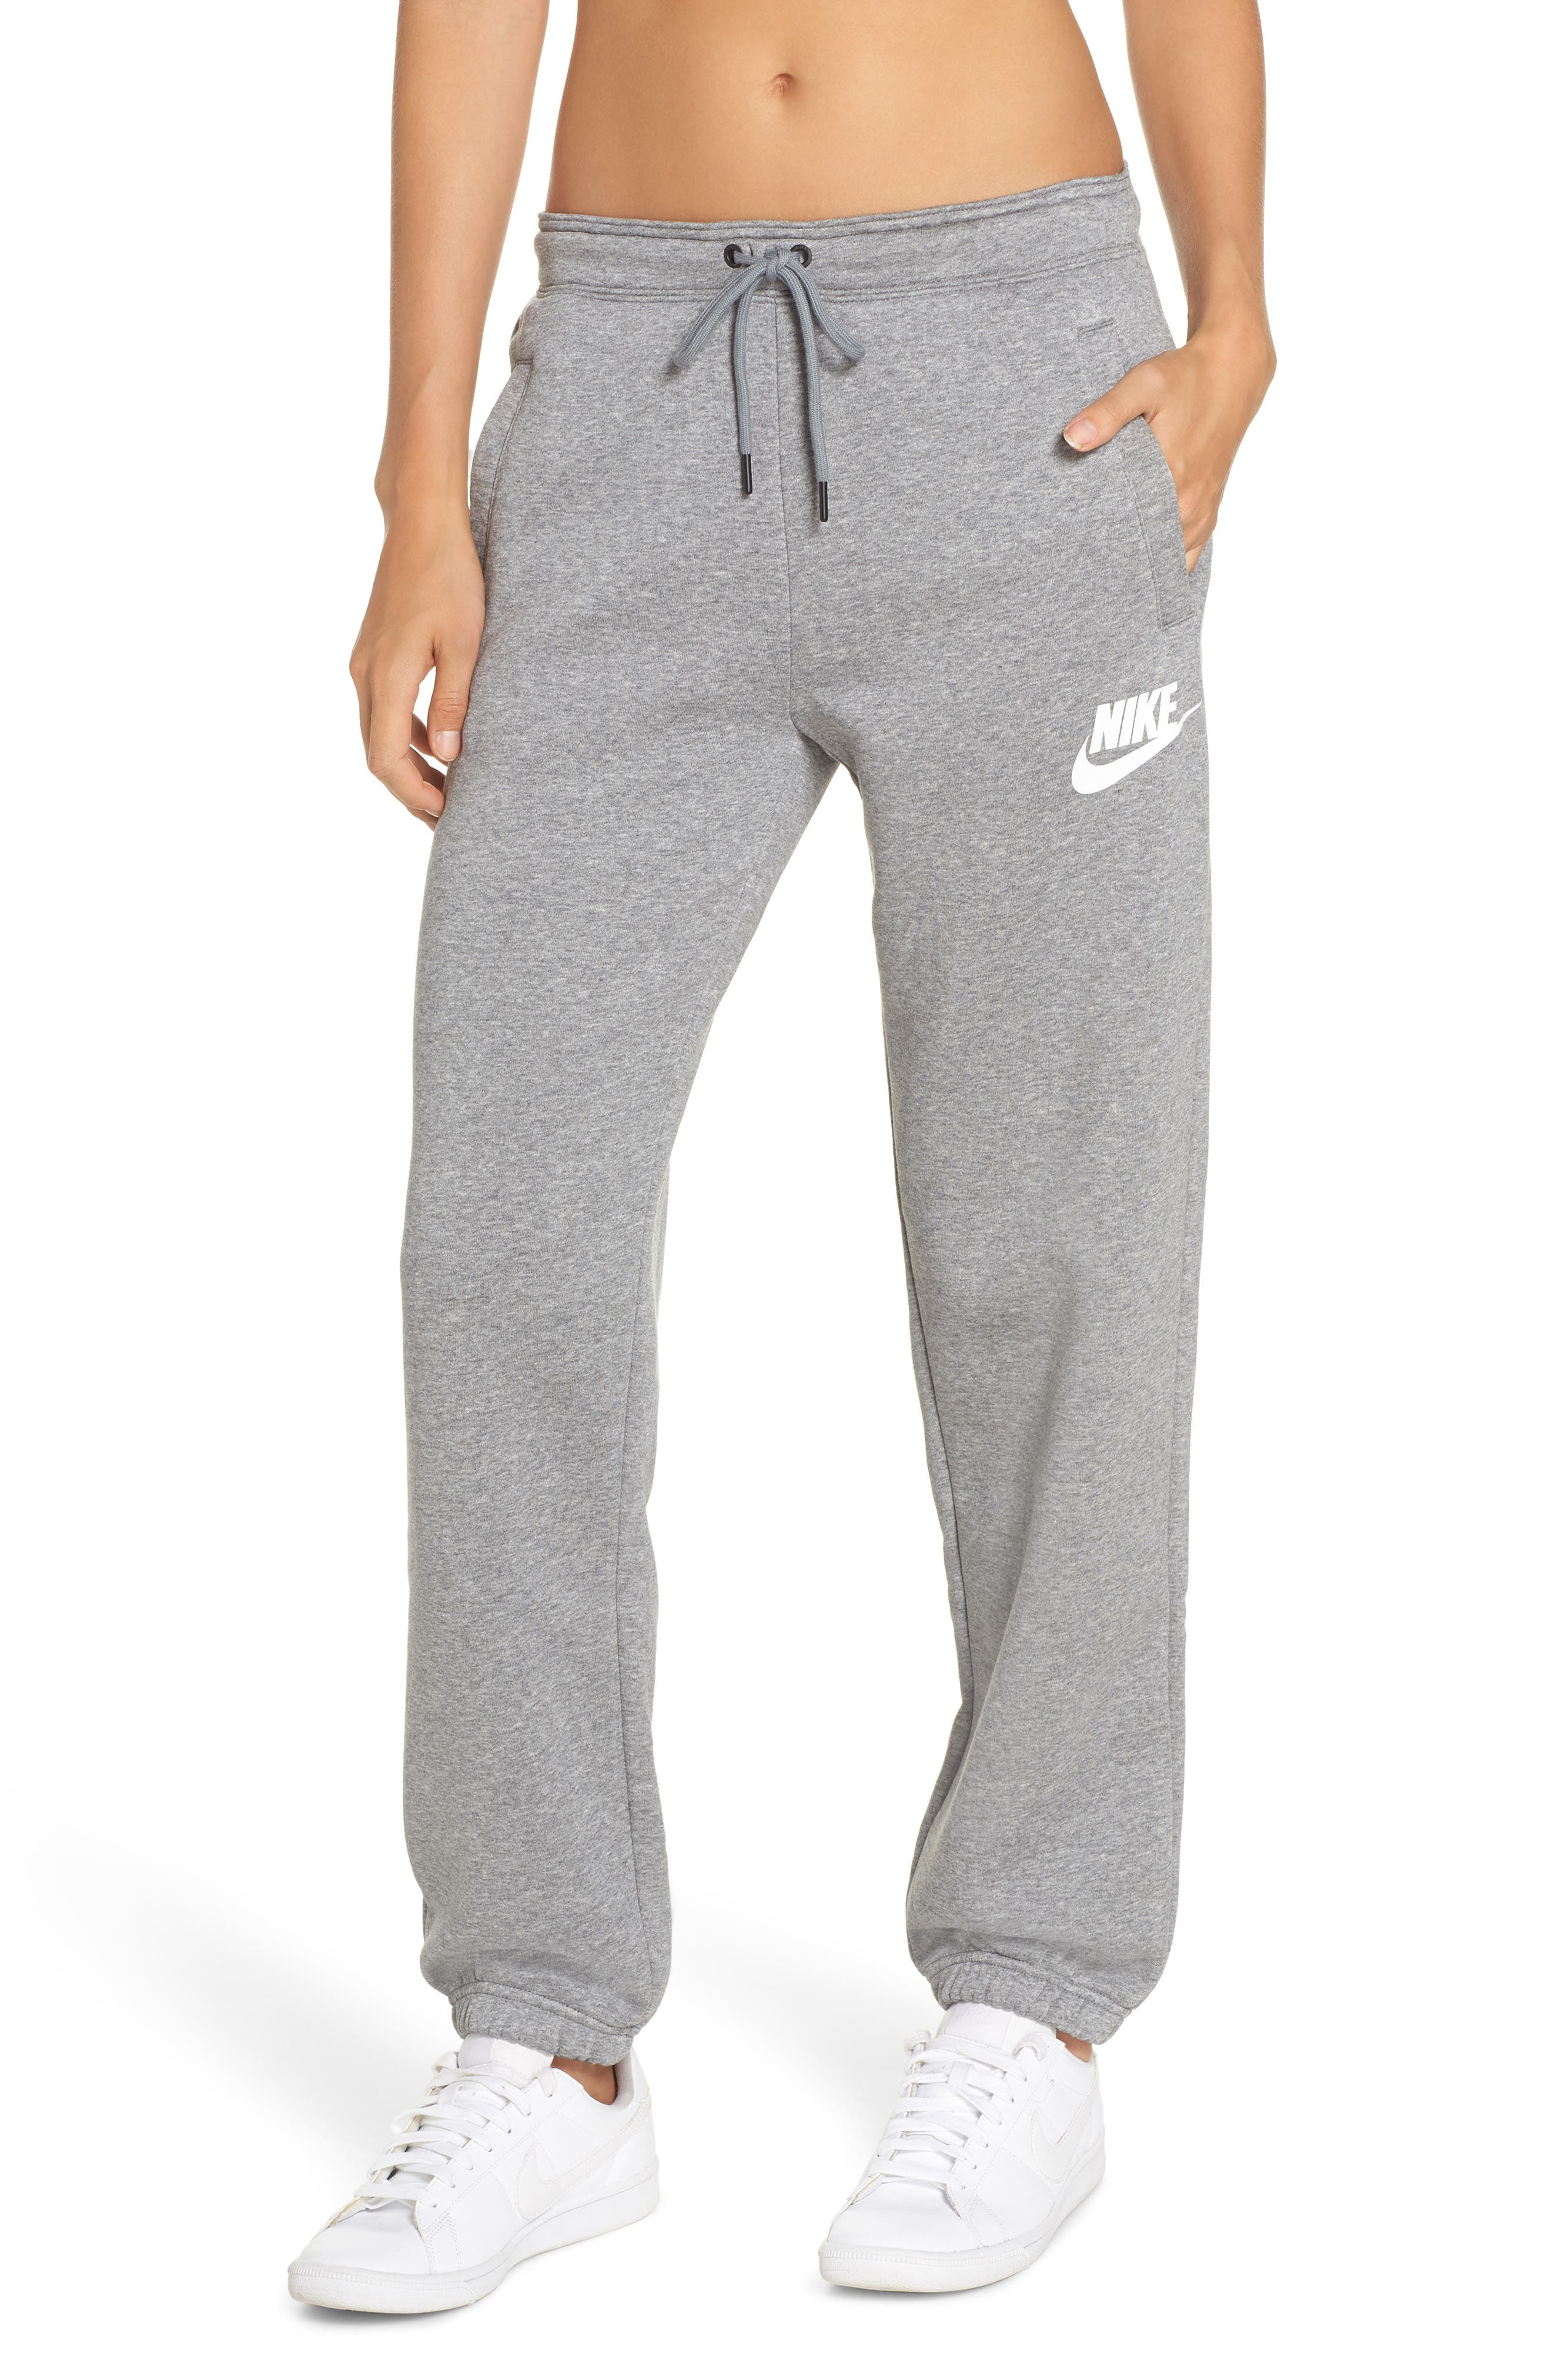 NSW Rally Pants,                             Main thumbnail 1, color,                             CARBON HEATHER/ COOL GREY